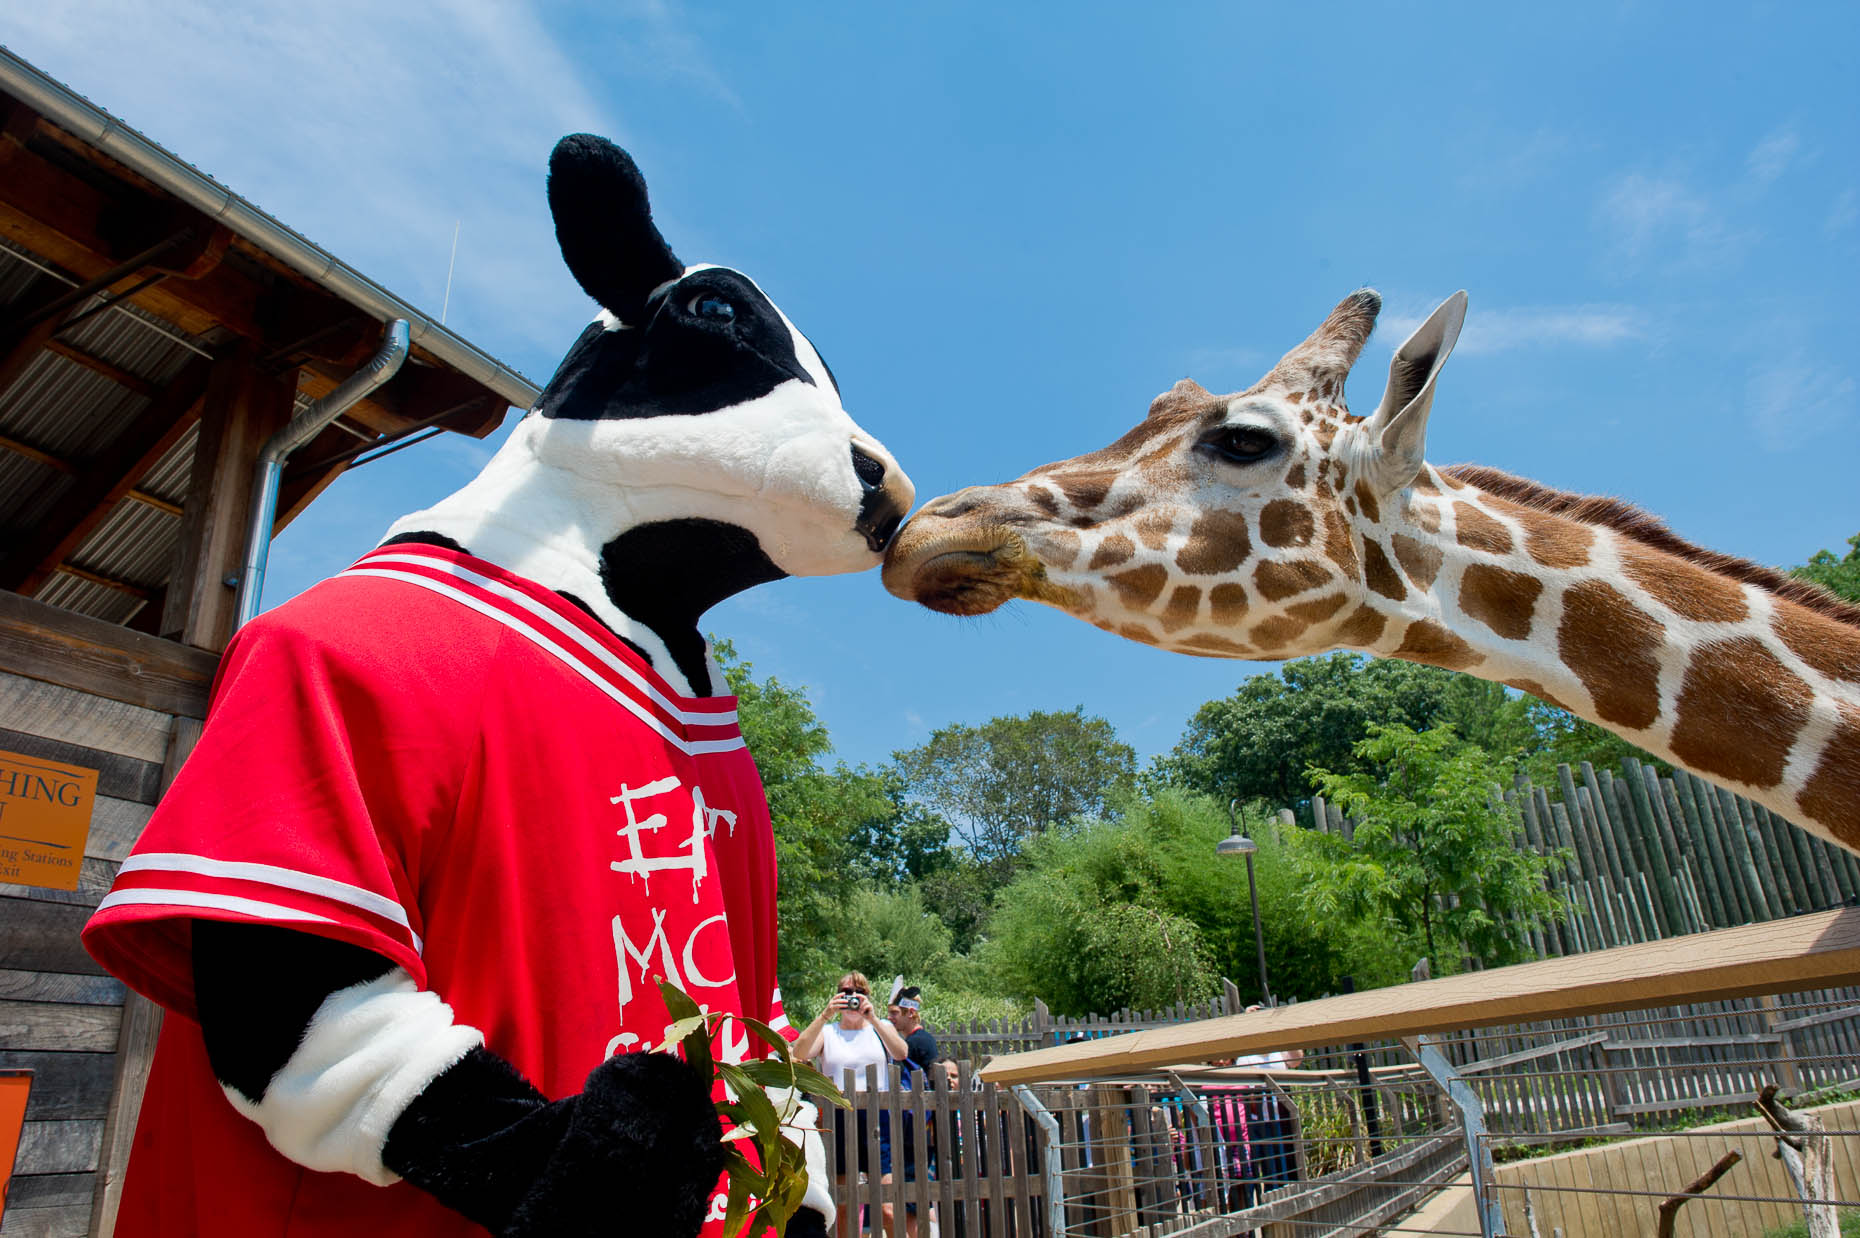 Chick-fil-A cow-and-girafe